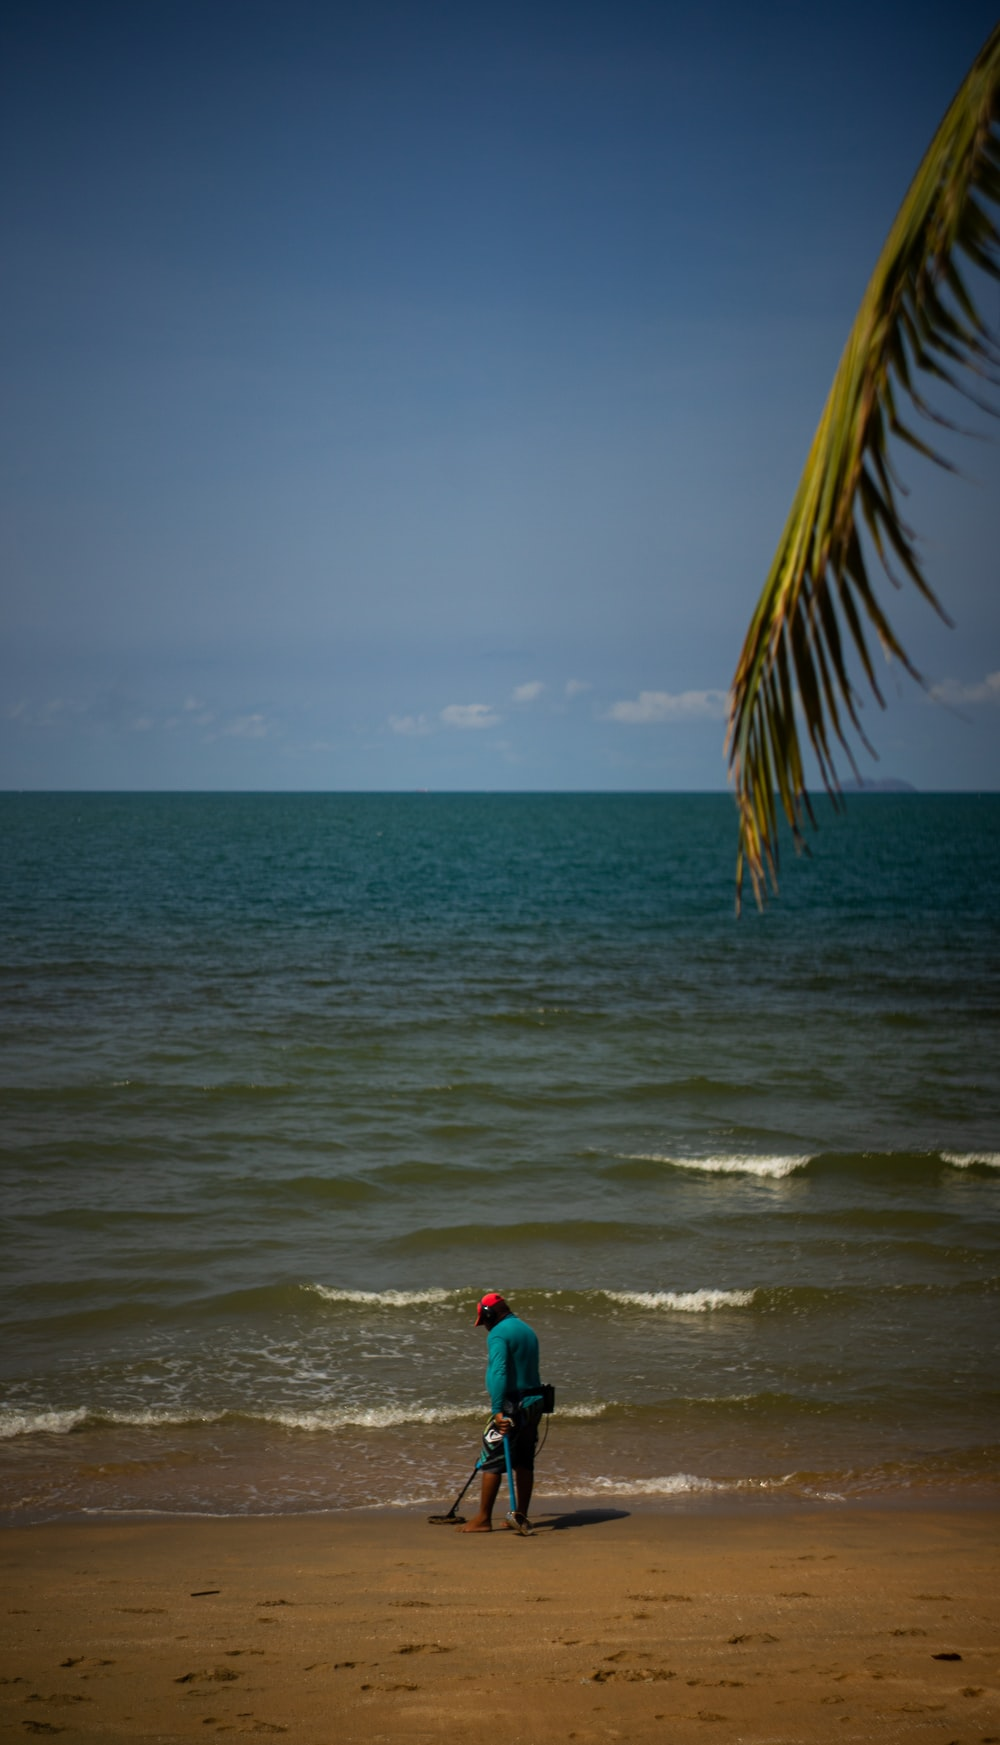 person in blue shirt on beach during daytime